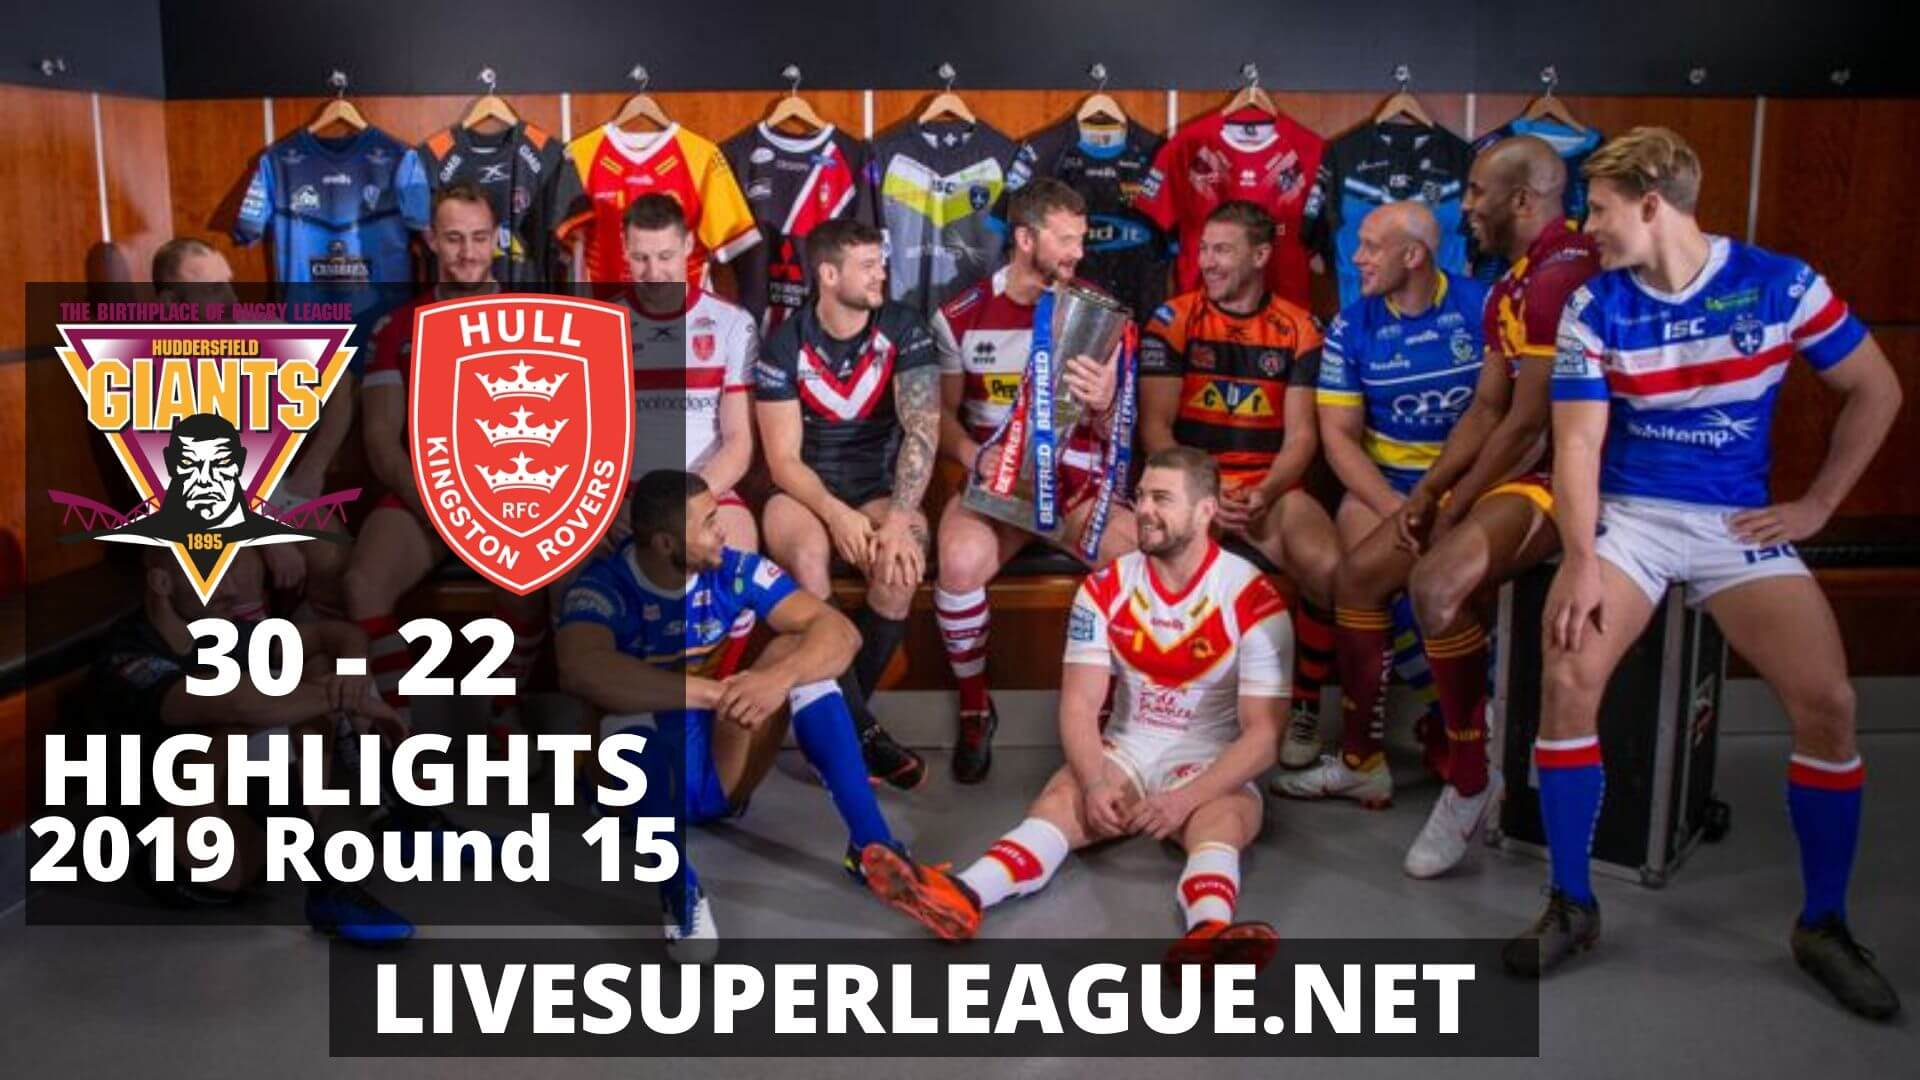 Huddersfield Giants Vs Hull Kingston Rovers Highlights 2019 Round 15